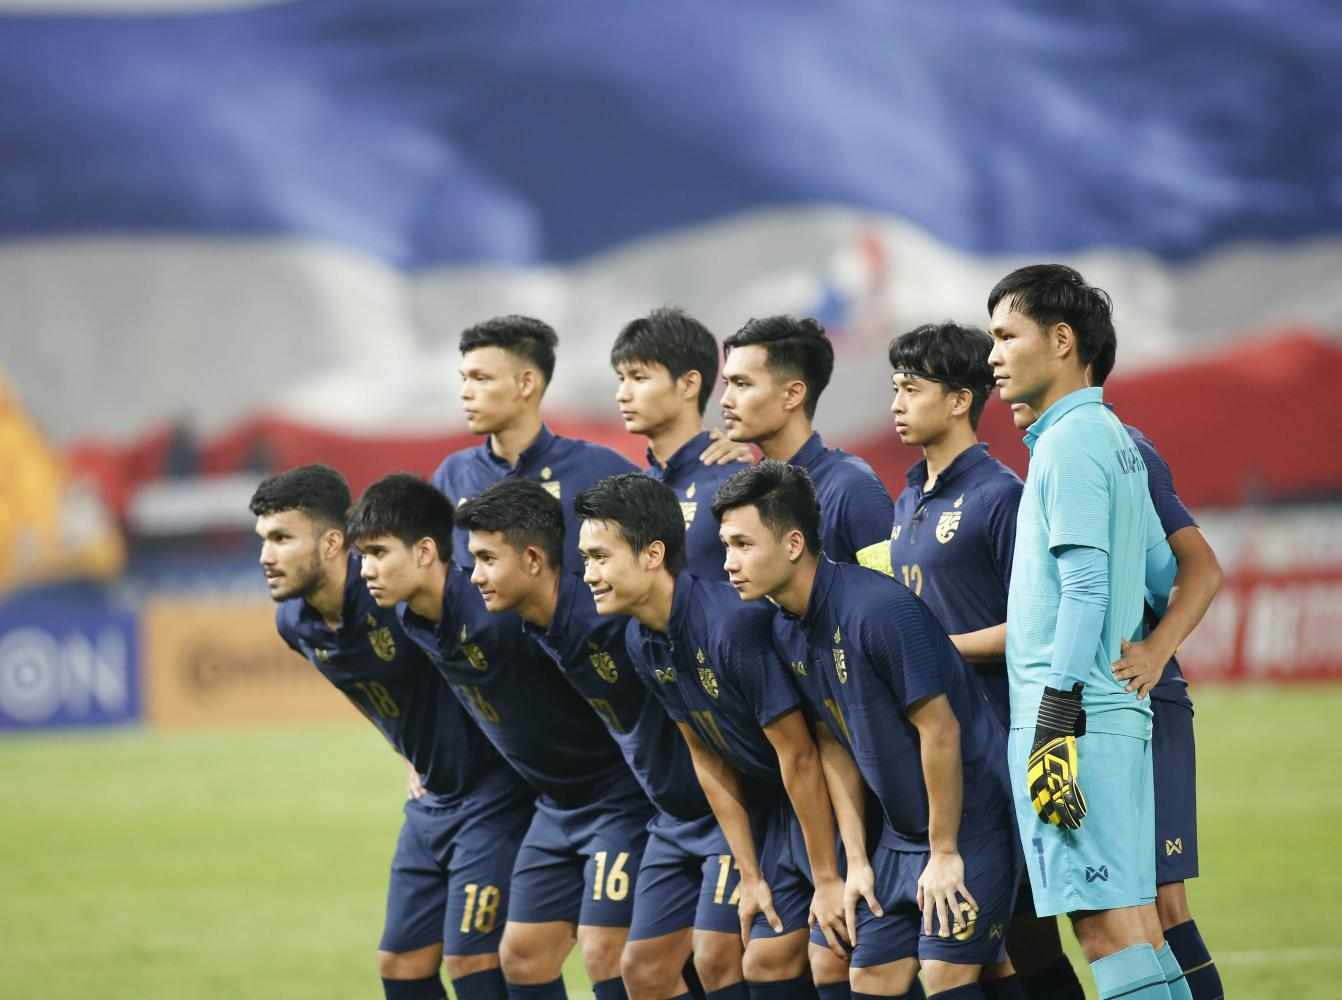 Thailand U23 players pose for a group photo ahead of their Group A game with Australia on Saturday. Pattarapong Chatpattarasill